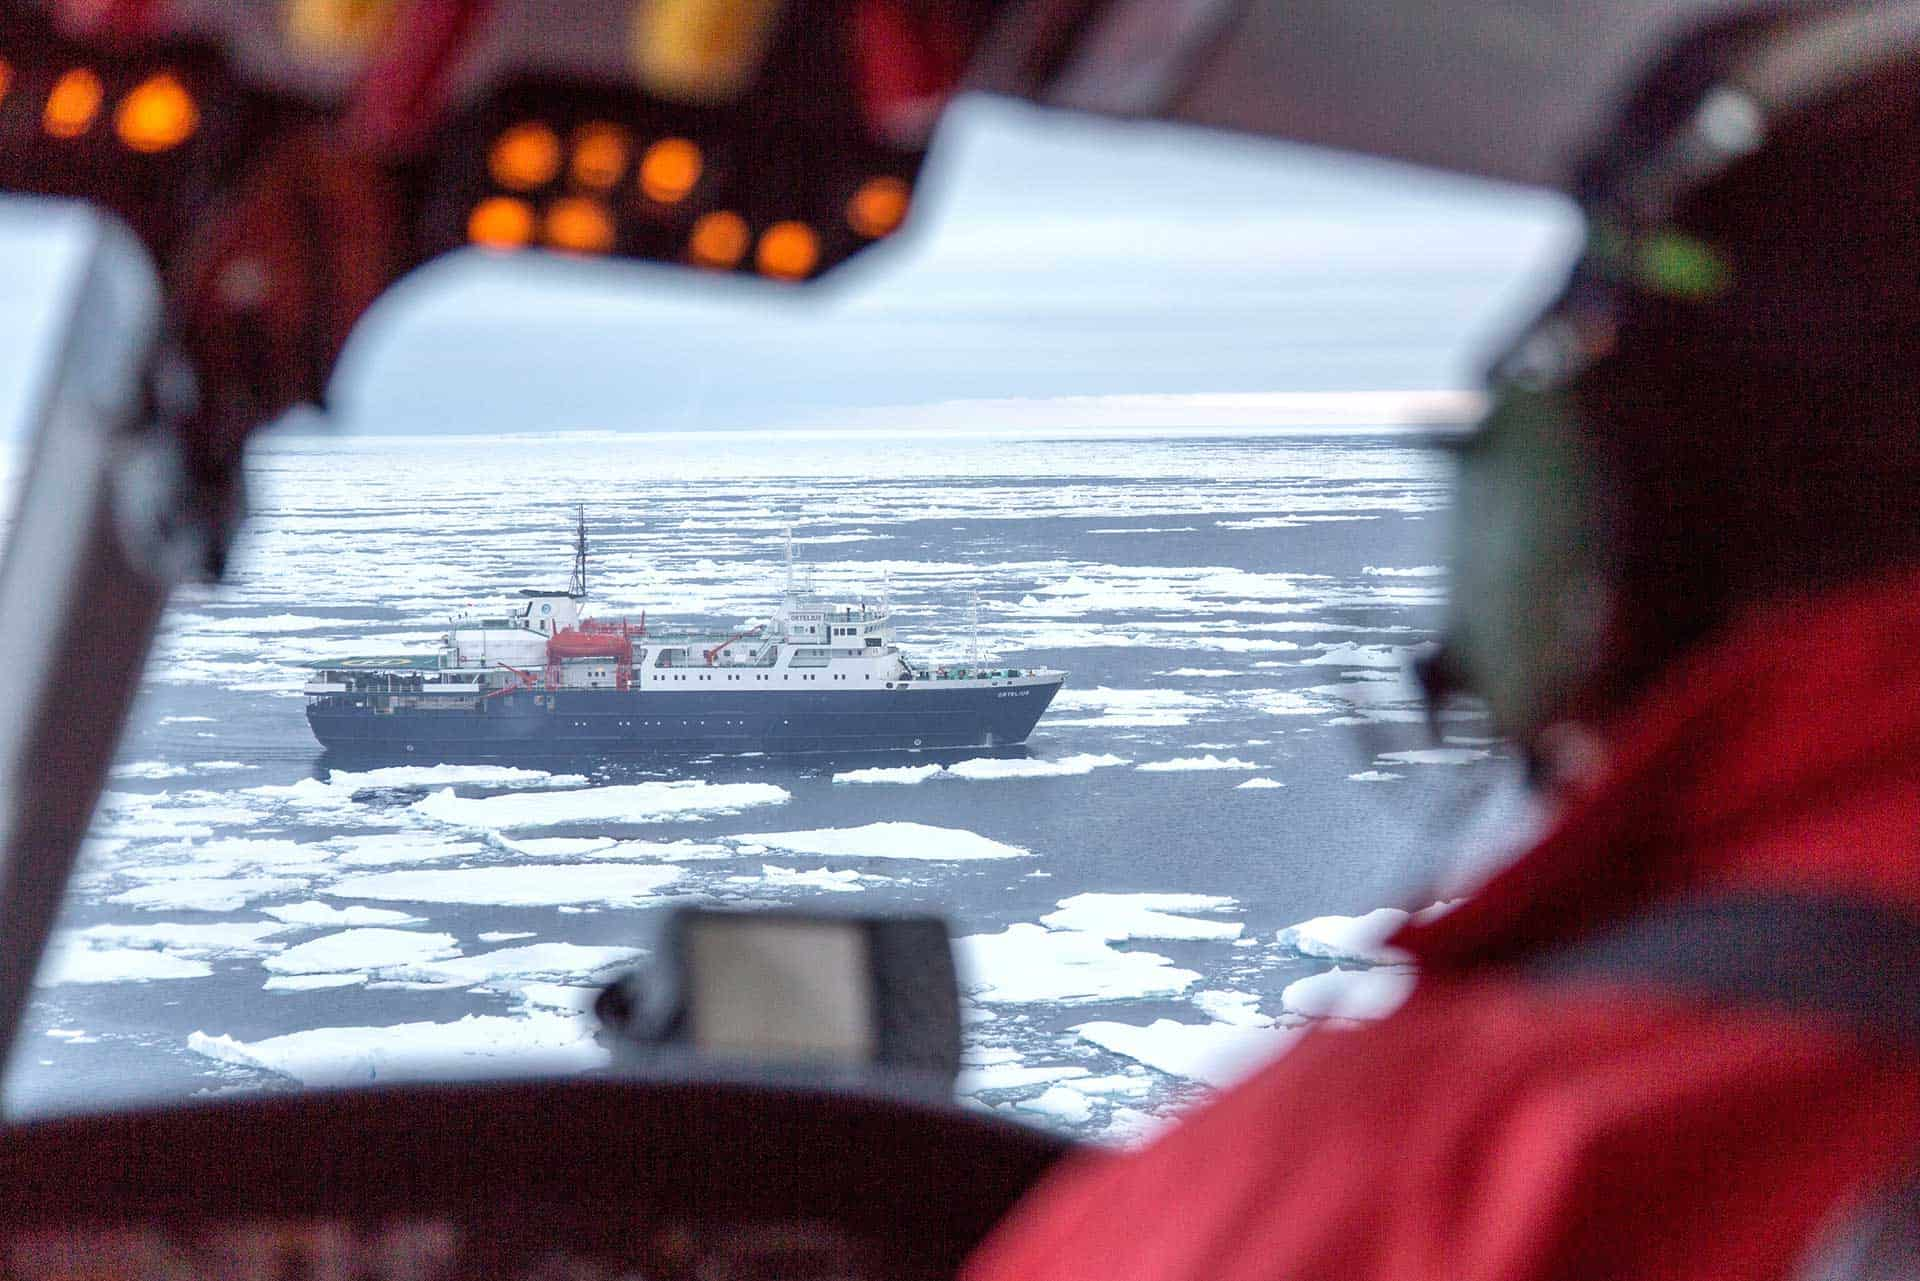 Helicopter flight deck Ross Sea Expledition